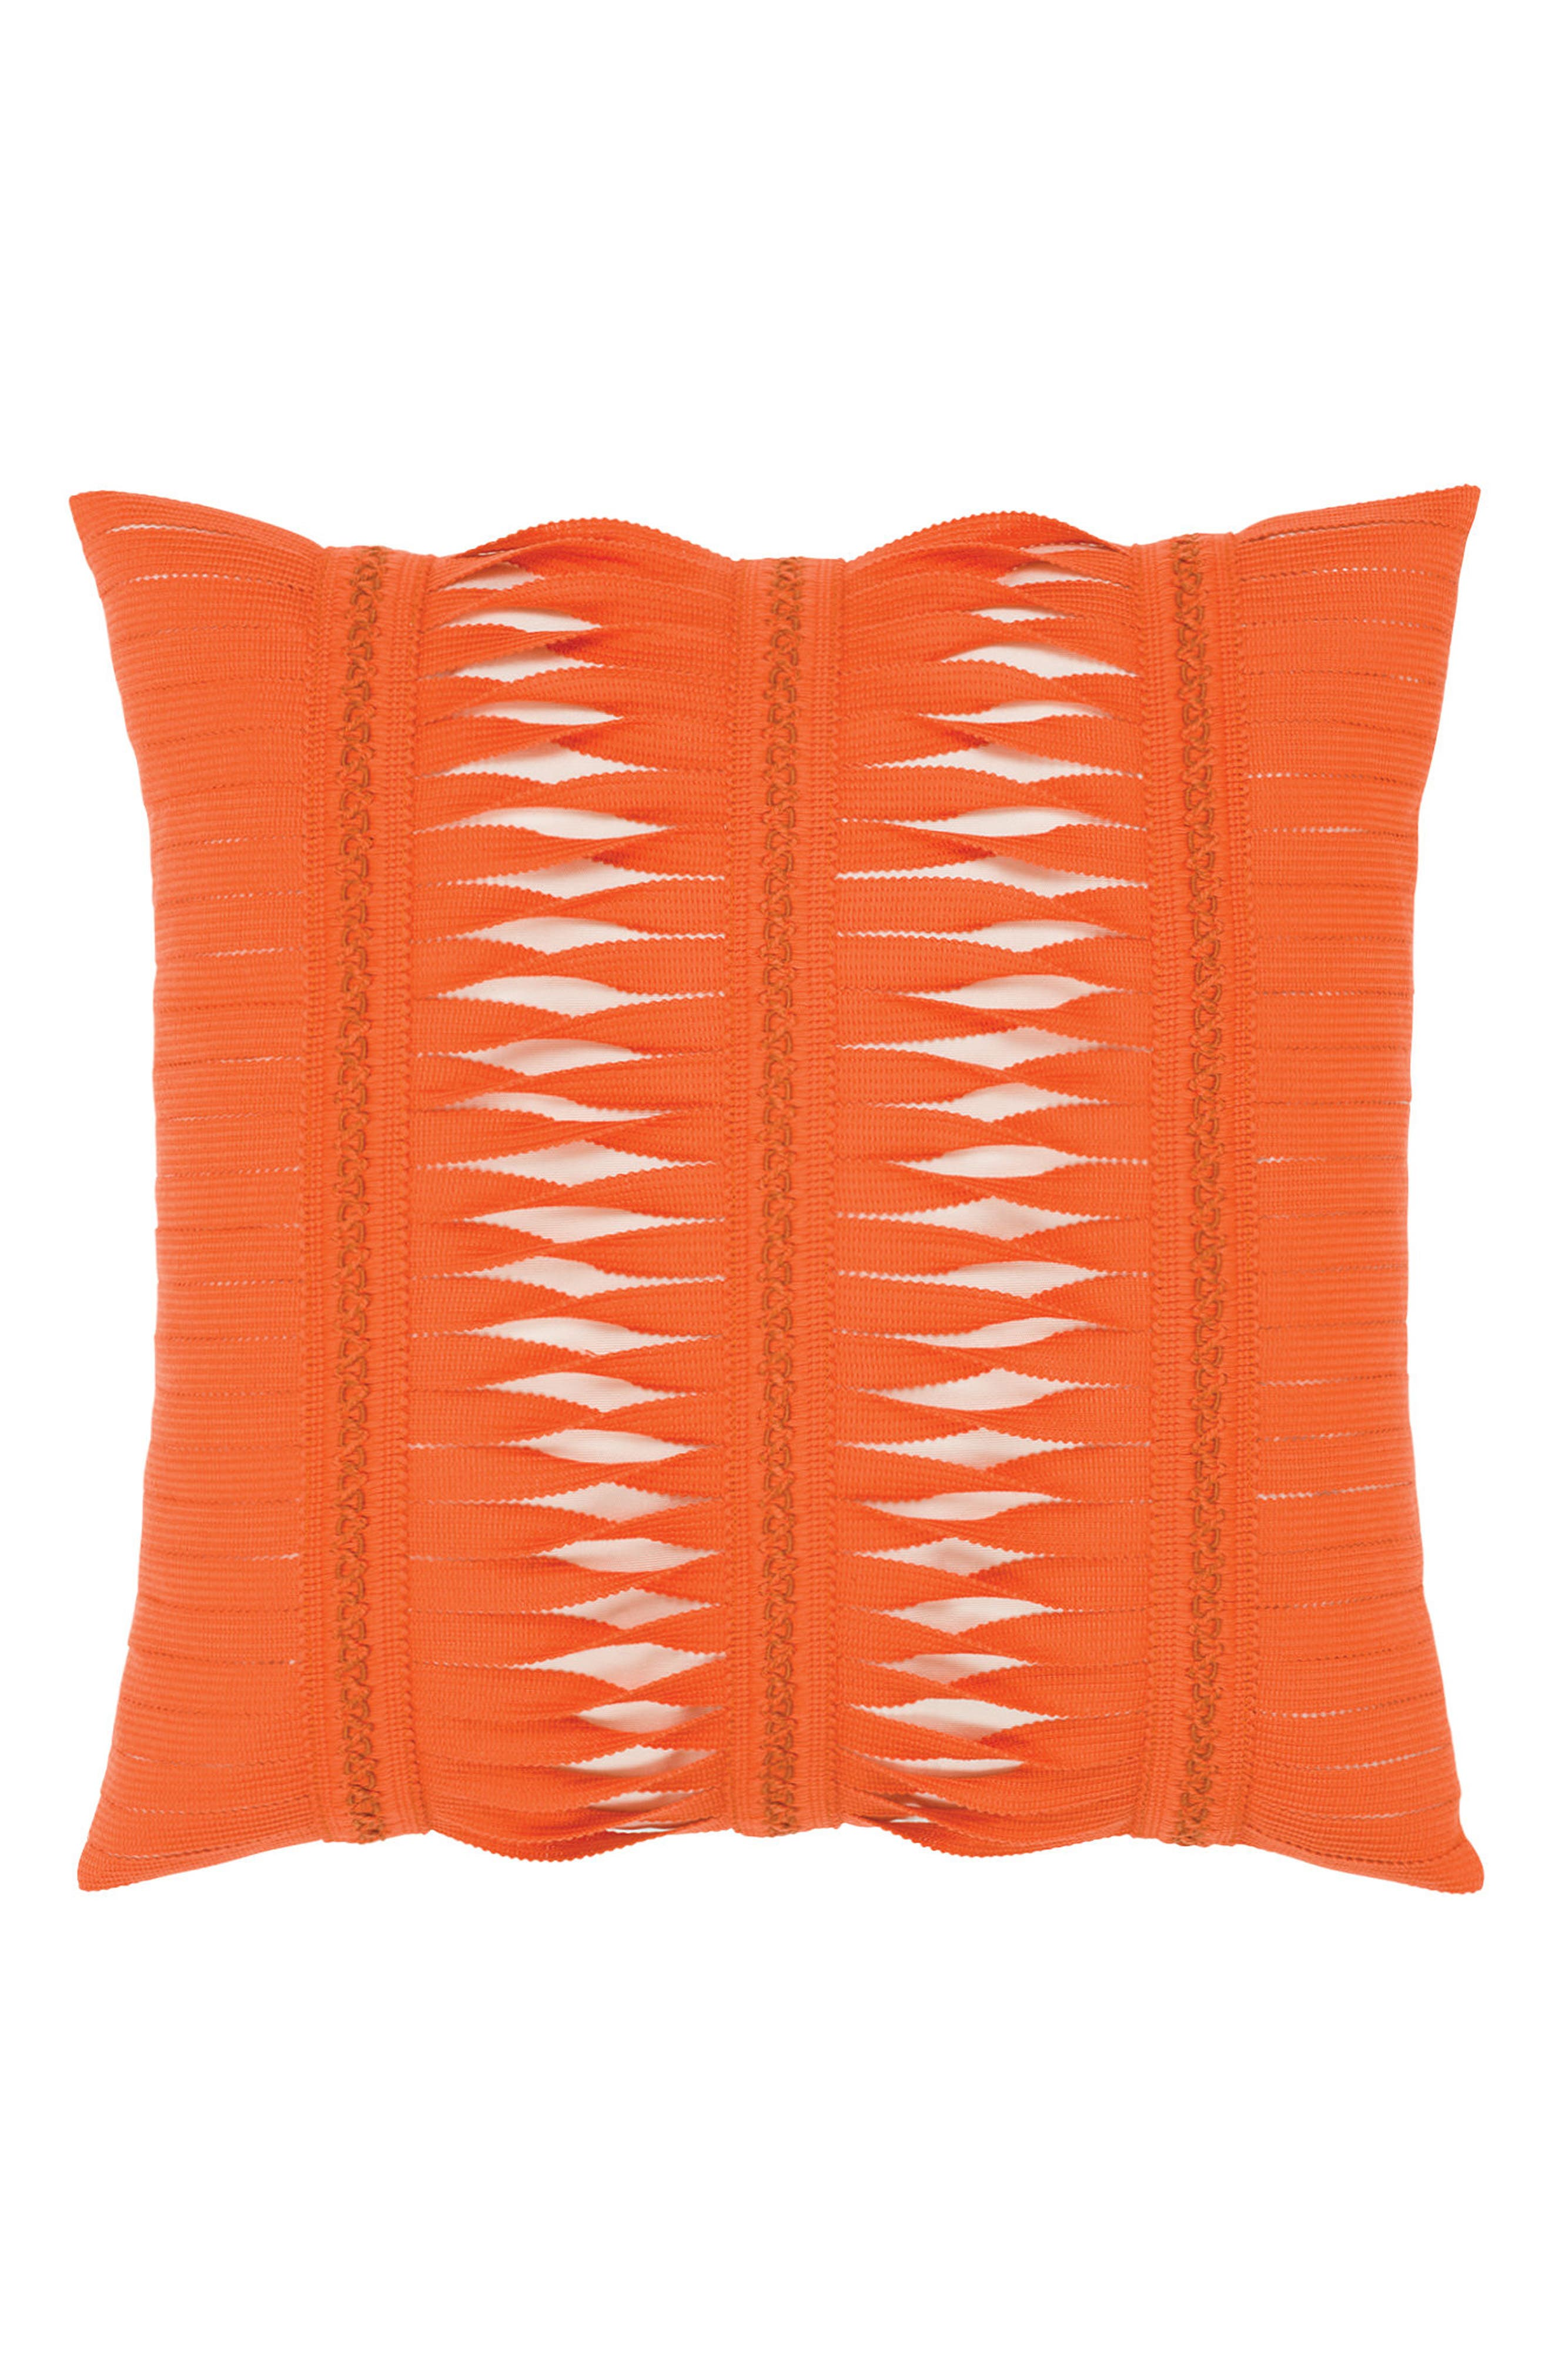 Gladiator Coral Indoor/Outdoor Accent Pillow,                             Main thumbnail 1, color,                             Orange